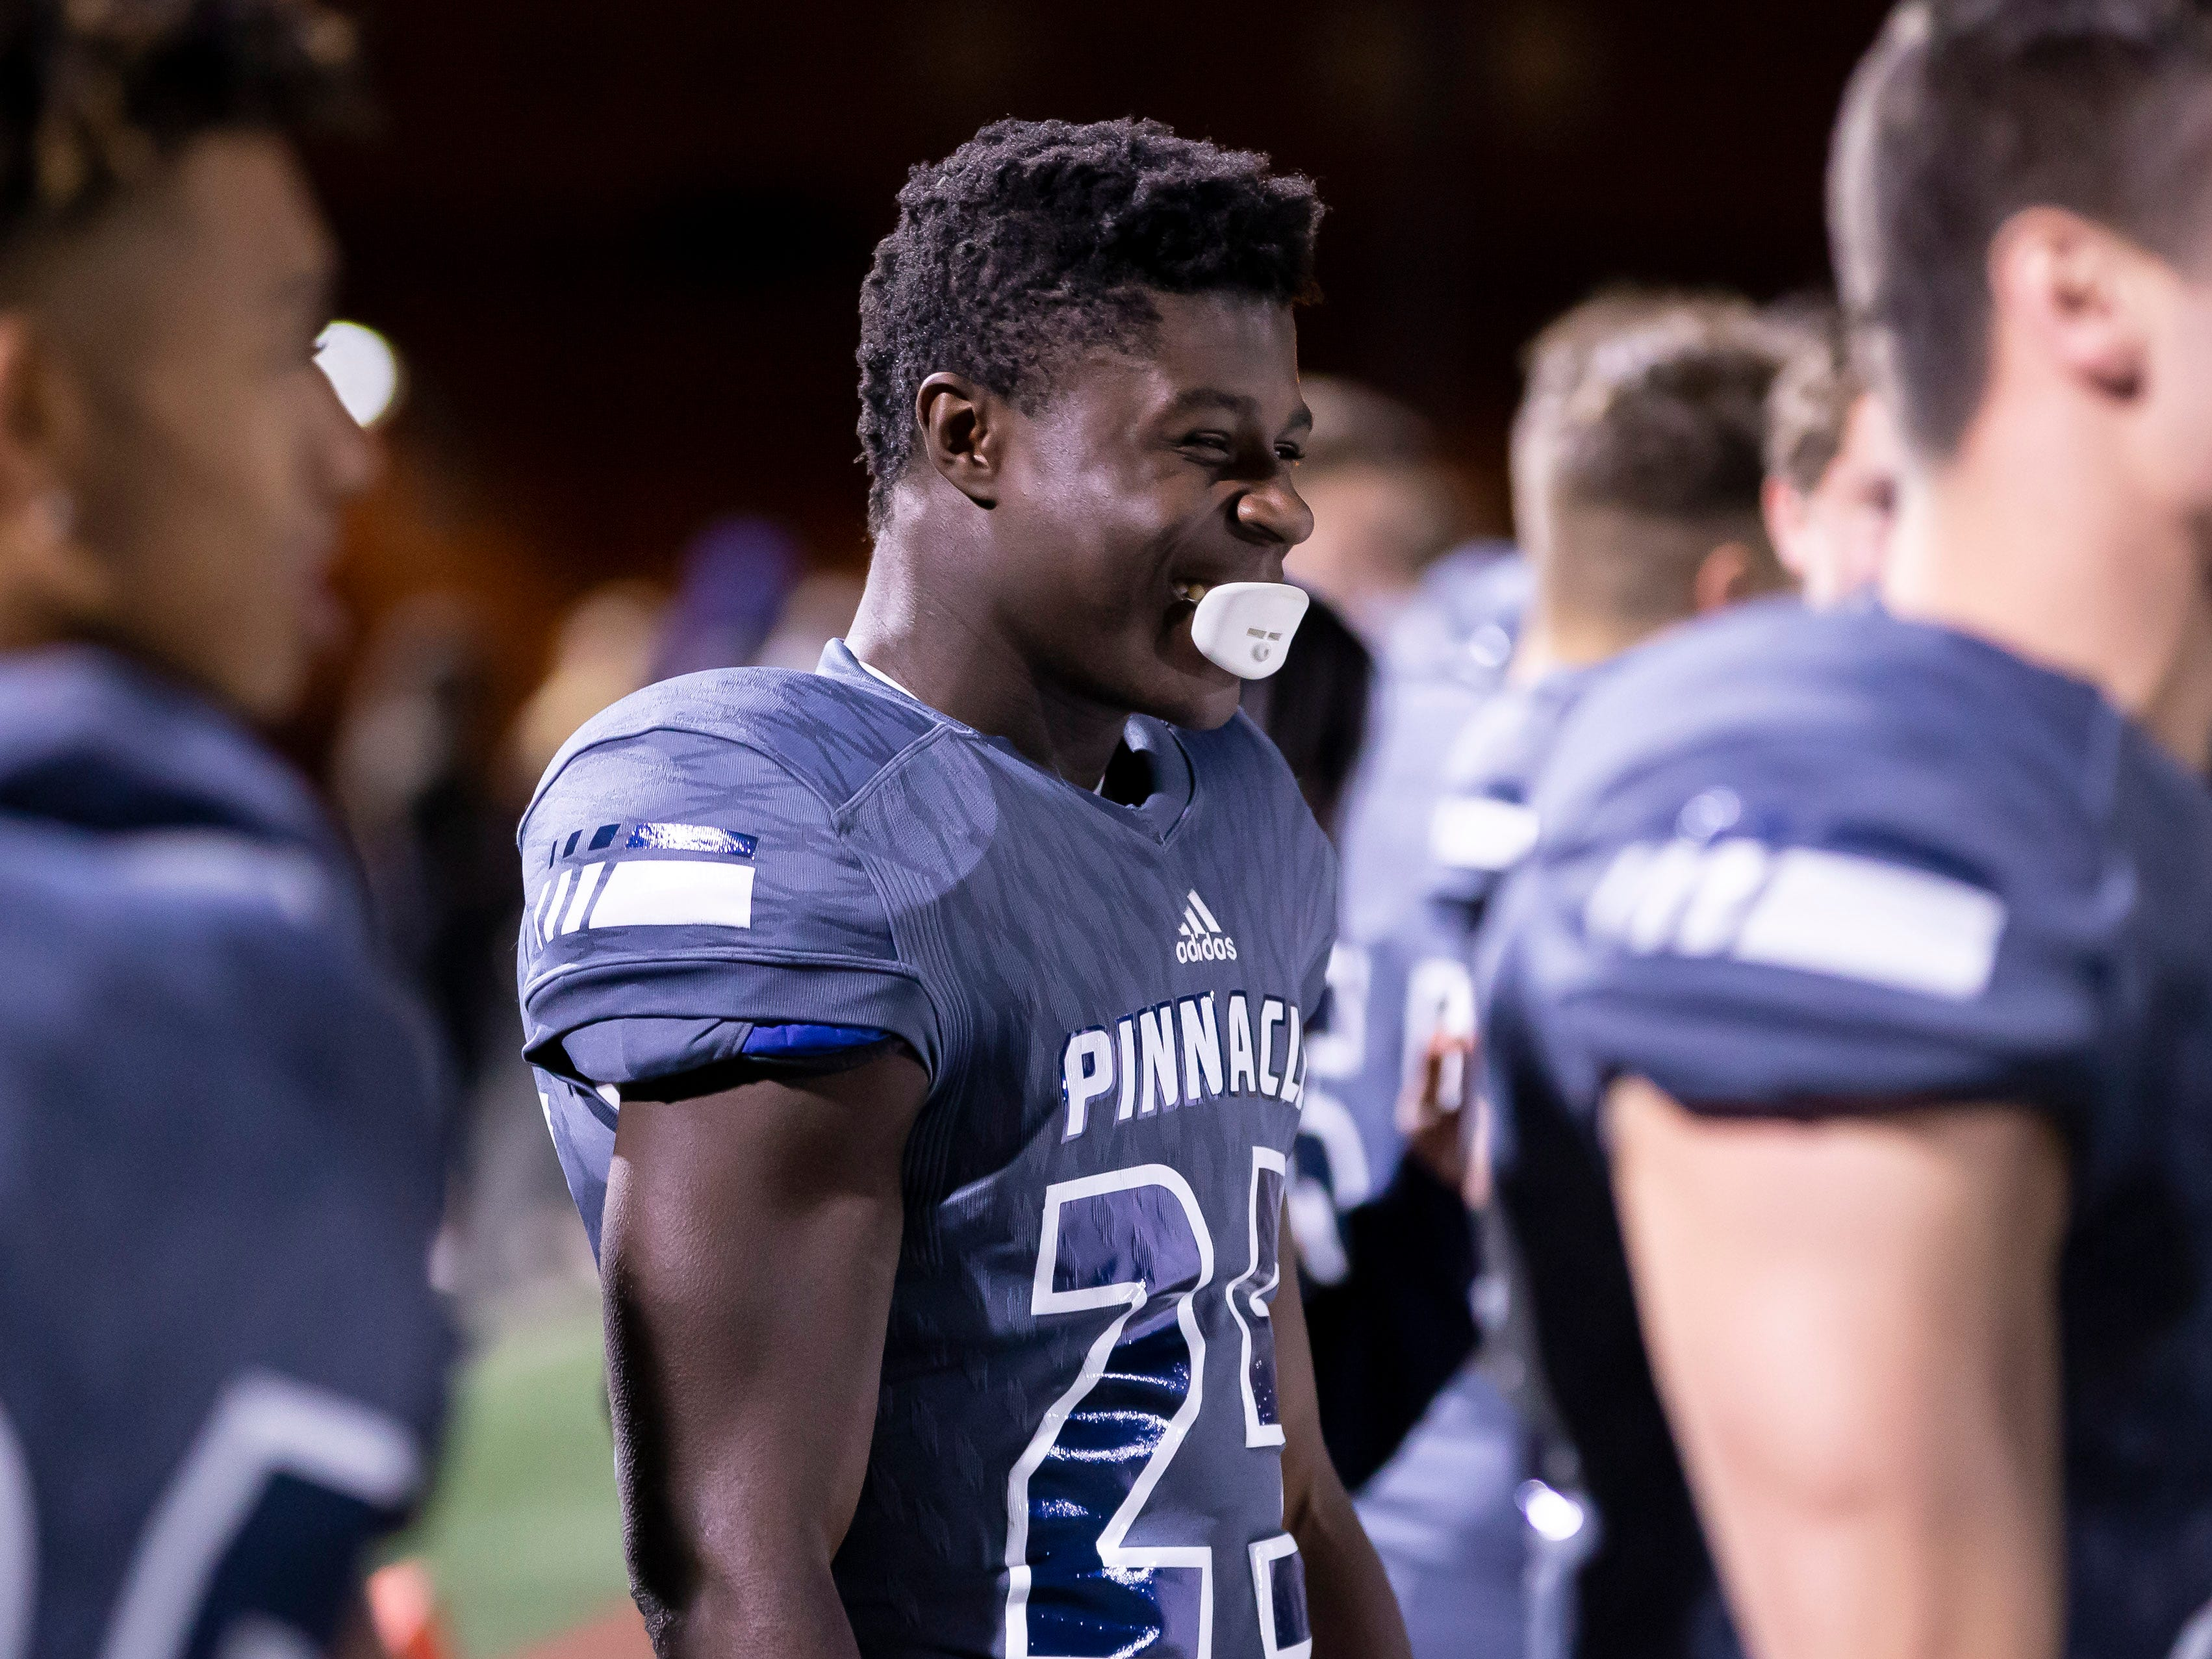 Senior linebacker Amelec Juntunen (25) of the Pinnacle Pioneers smiles during the playoff game against the Red Mountain Mountain Lions at Pinnacle High School on Friday, November 9, 2018 in Phoenix, Arizona. #azhsfb